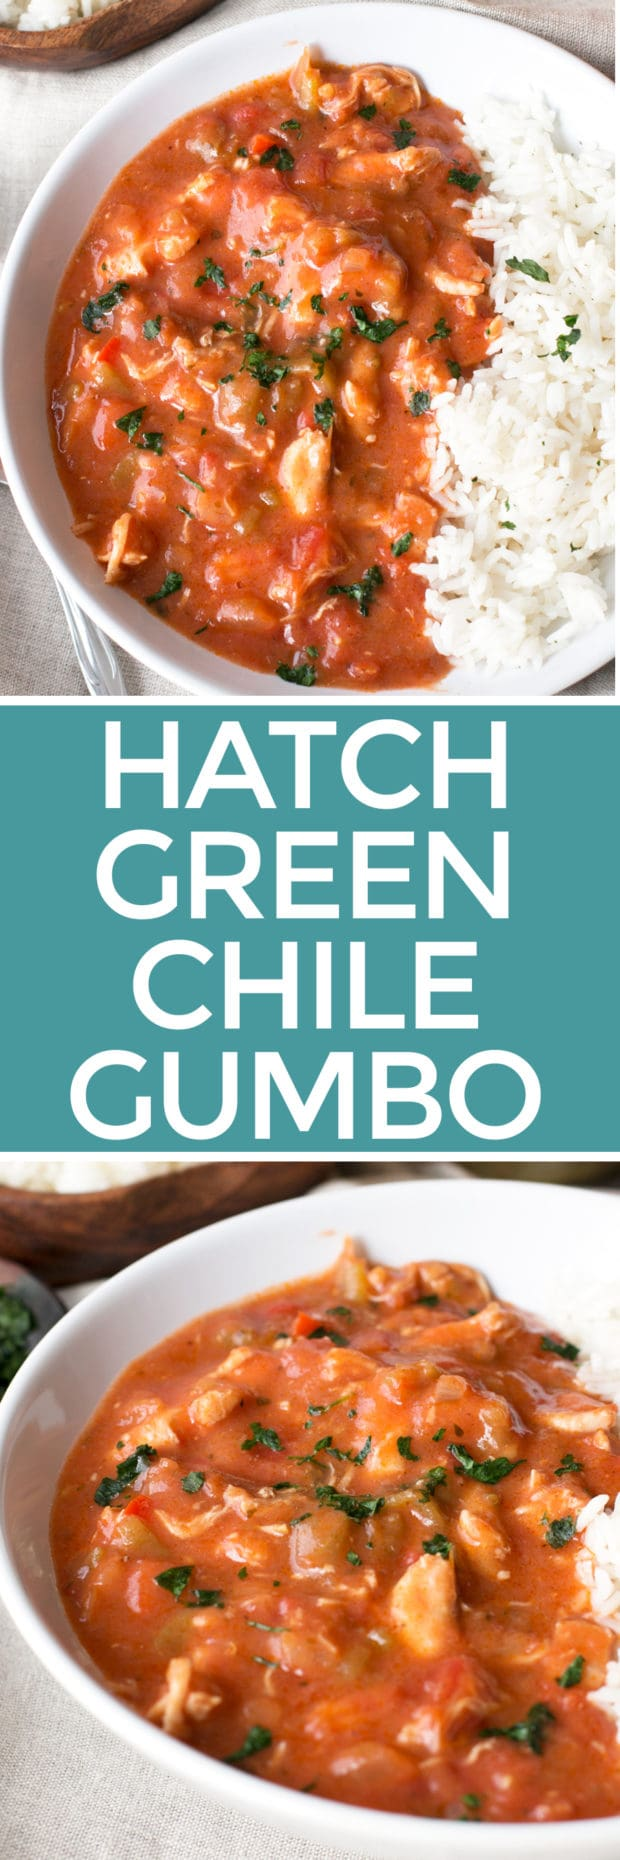 Hatch Green Chile Gumbo | cakenknife.com #mardigras, #dinner #soup